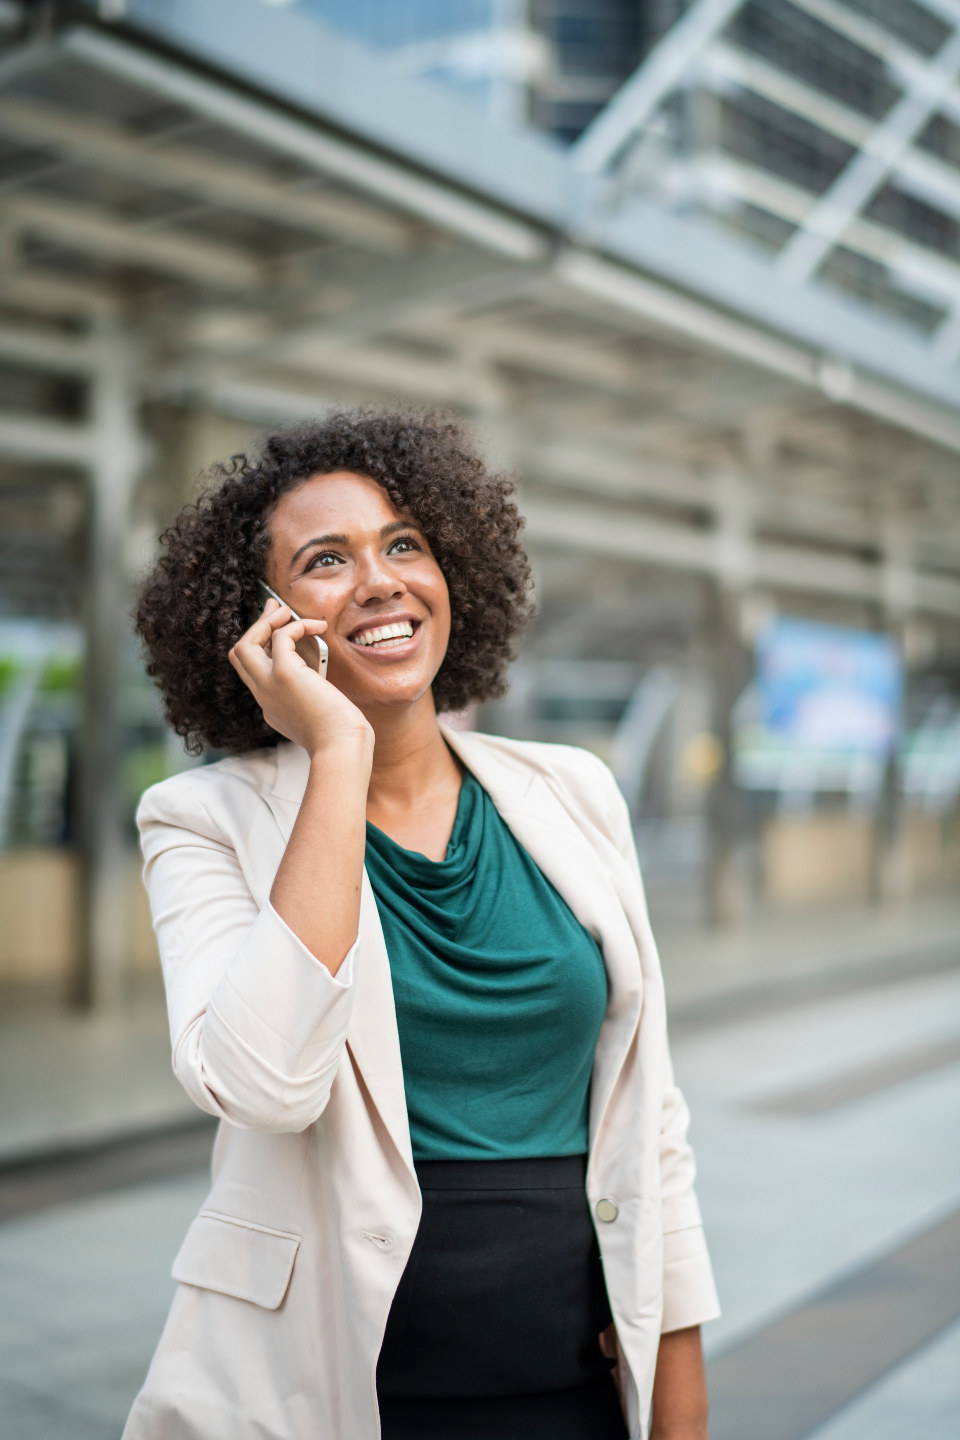 businesswoman city woman calling phone happy expressive business cellphone mobile networking communication chatting